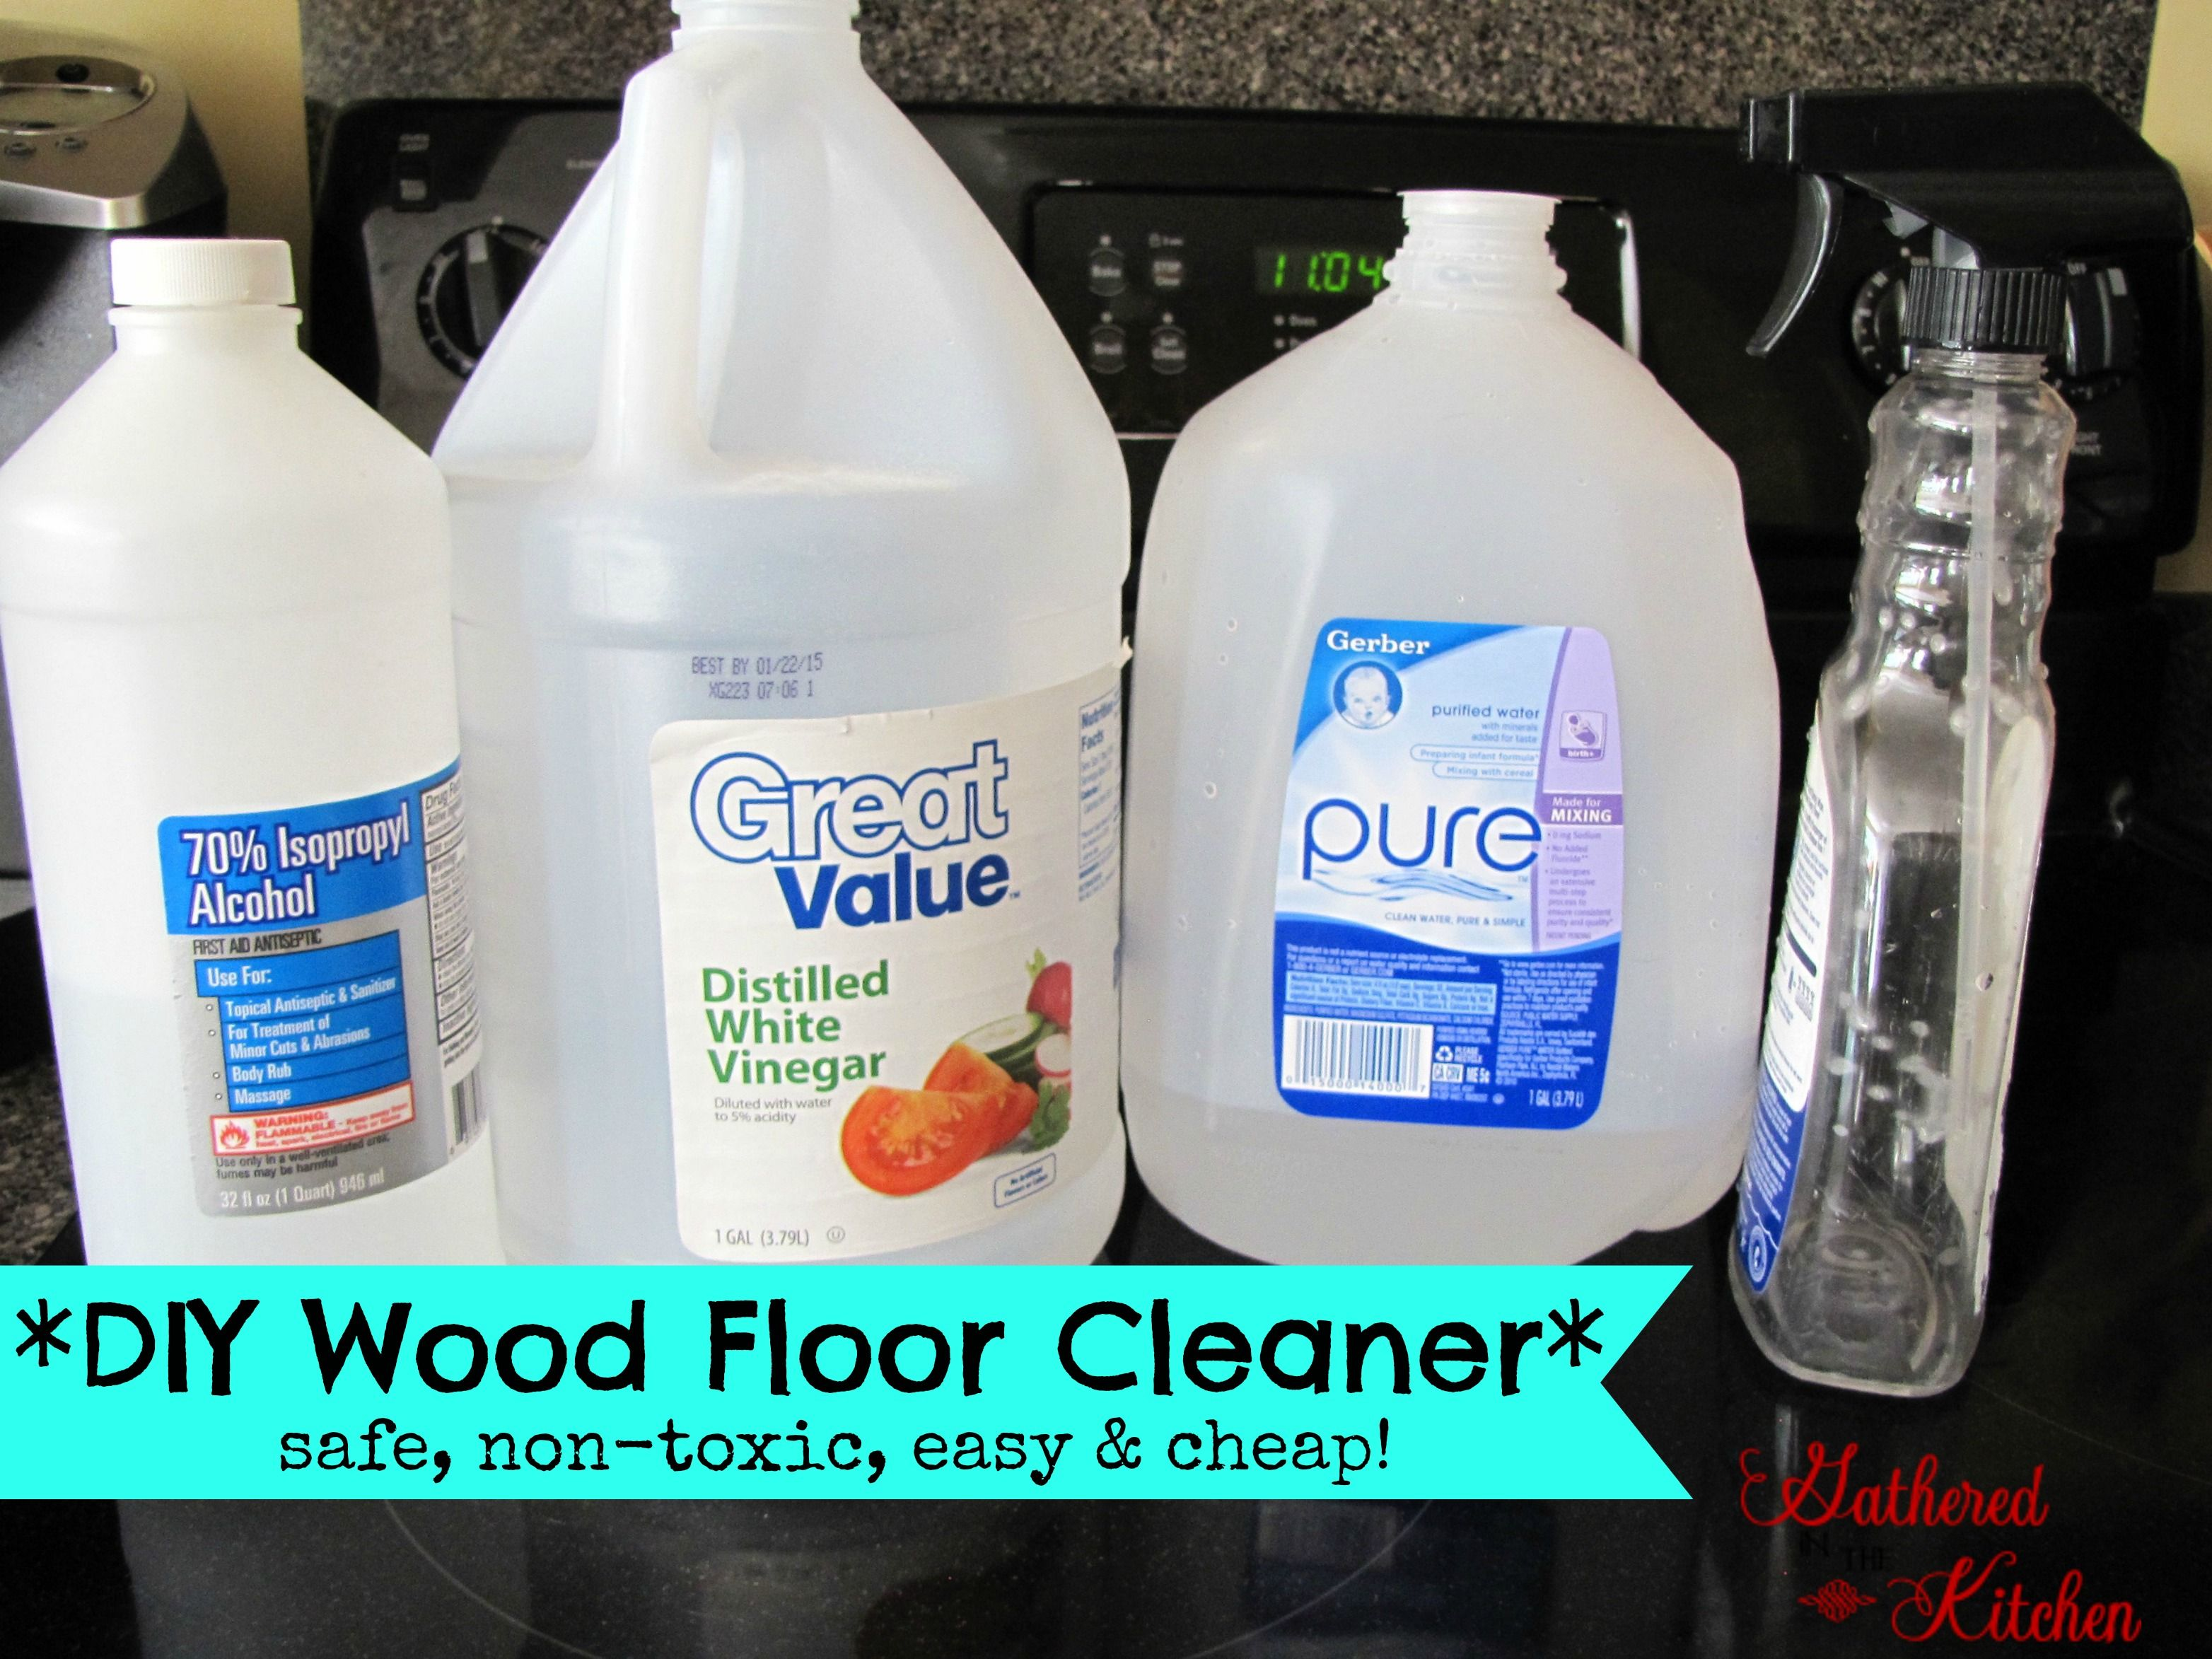 Diy Wood Floor Cleaner Safe Non Toxic Easy And Cheap Good To